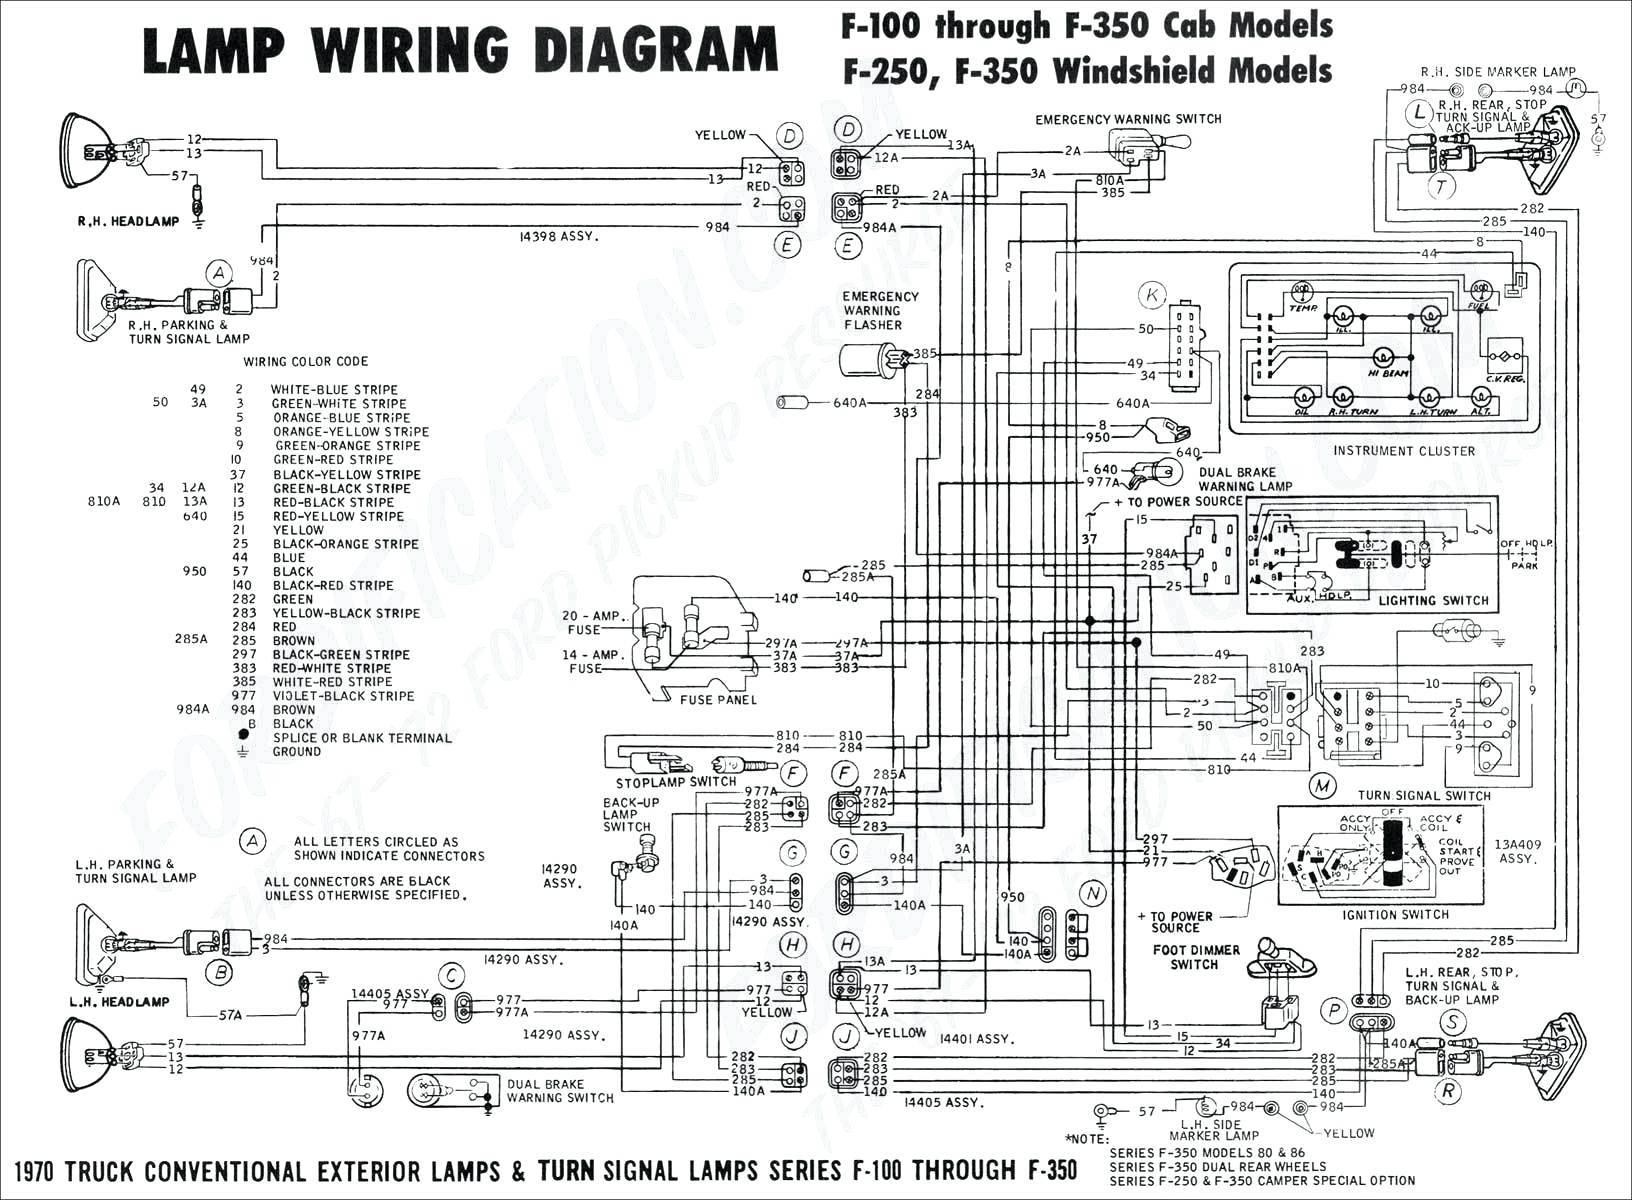 ford f350 trailer wiring diagram Collection-Ford F350 Trailer Wiring Diagram Trailer Wiring Diagram ford Ranger Inspirationa 2000 ford F250 Trailer 6-b